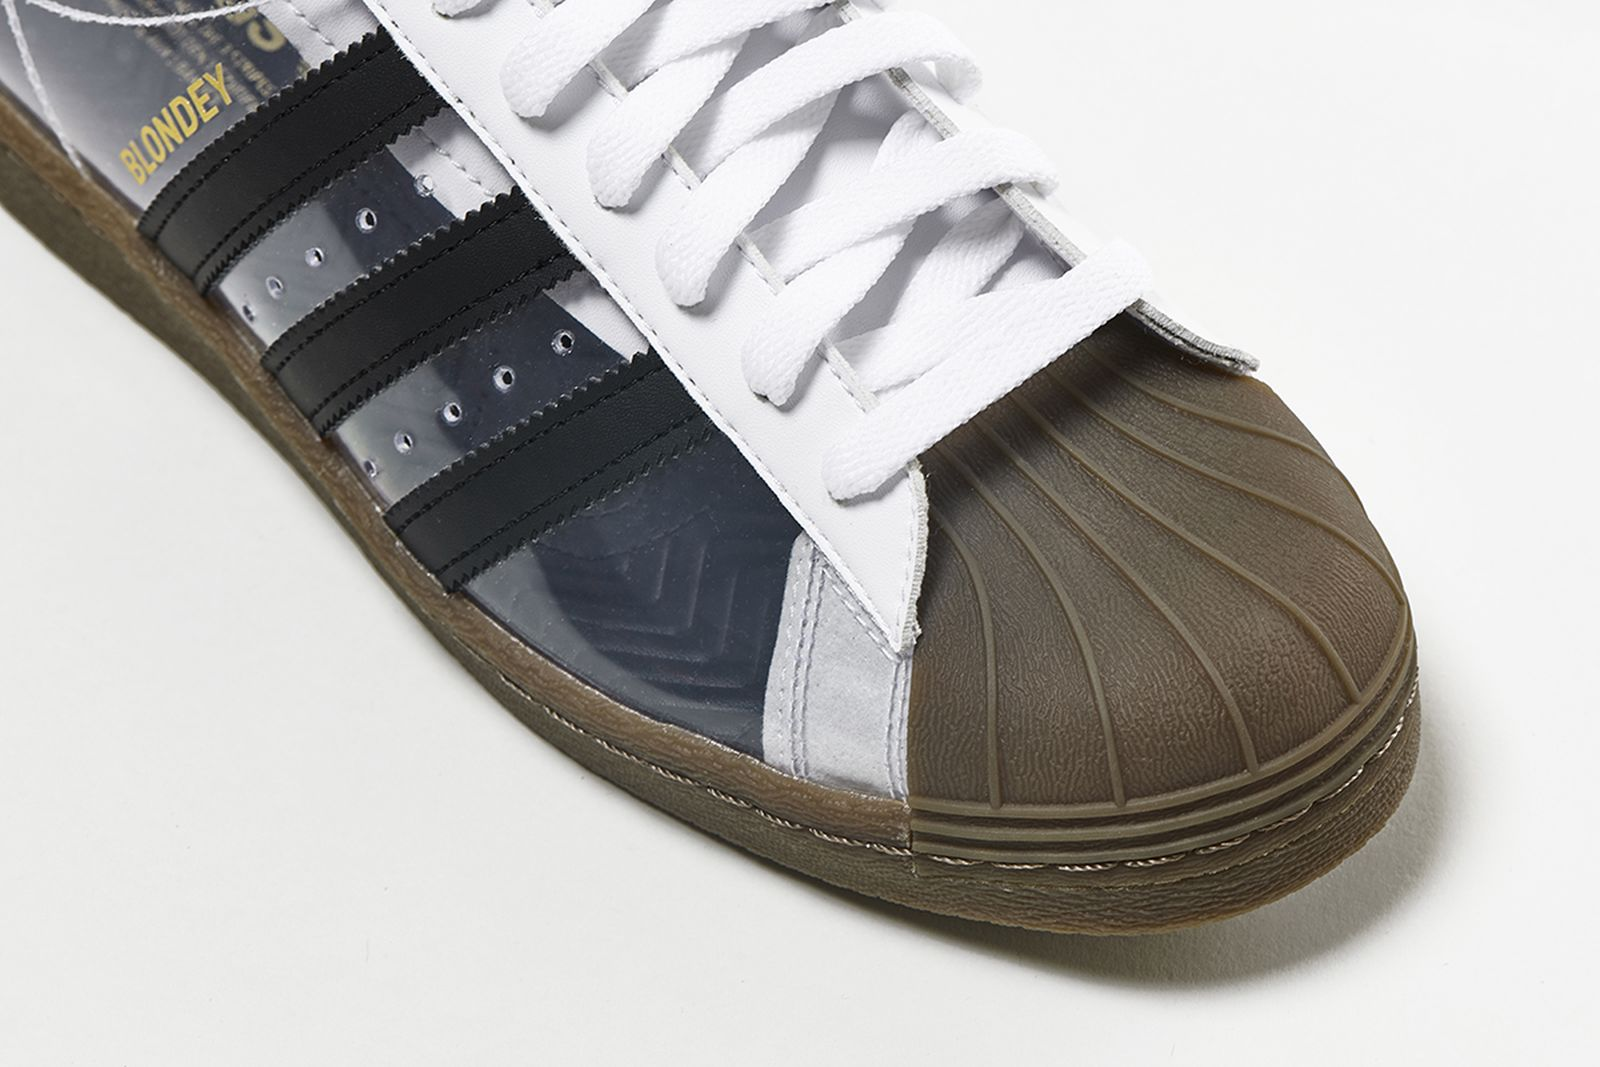 blondey-mccoy-adidas-superstar-80s-clear-release-date-price-1-06